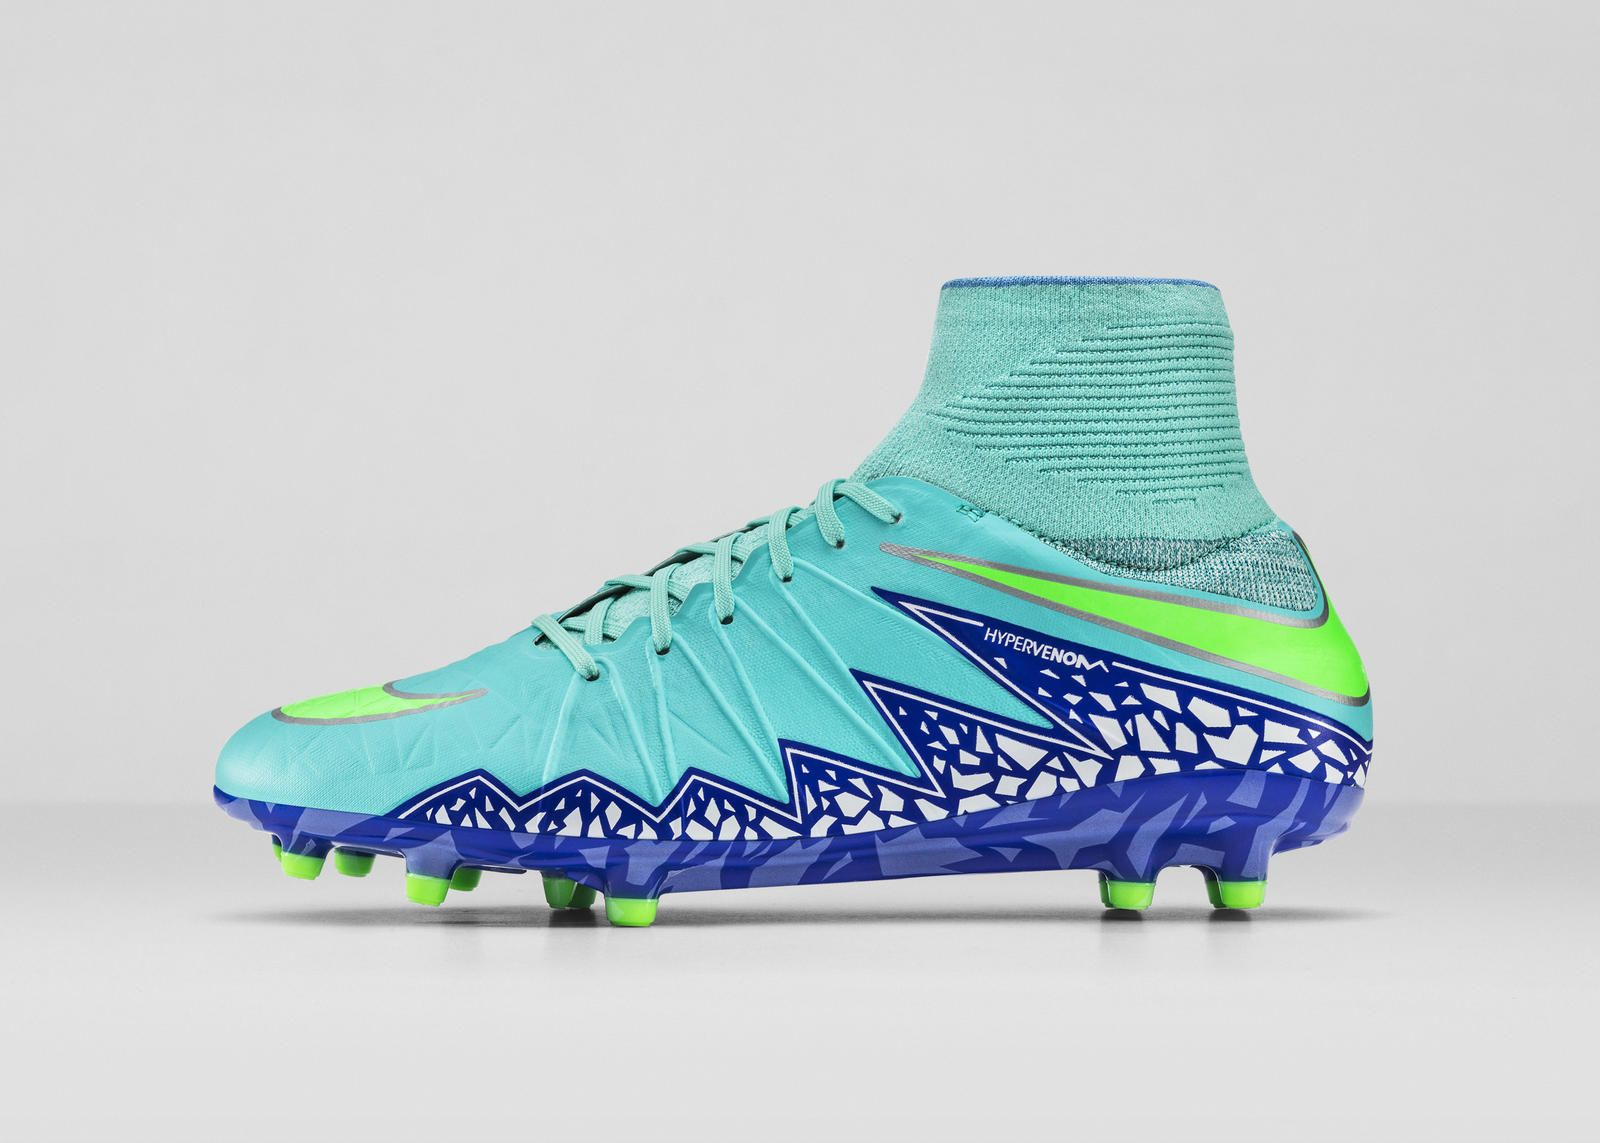 new nike cleats soccer